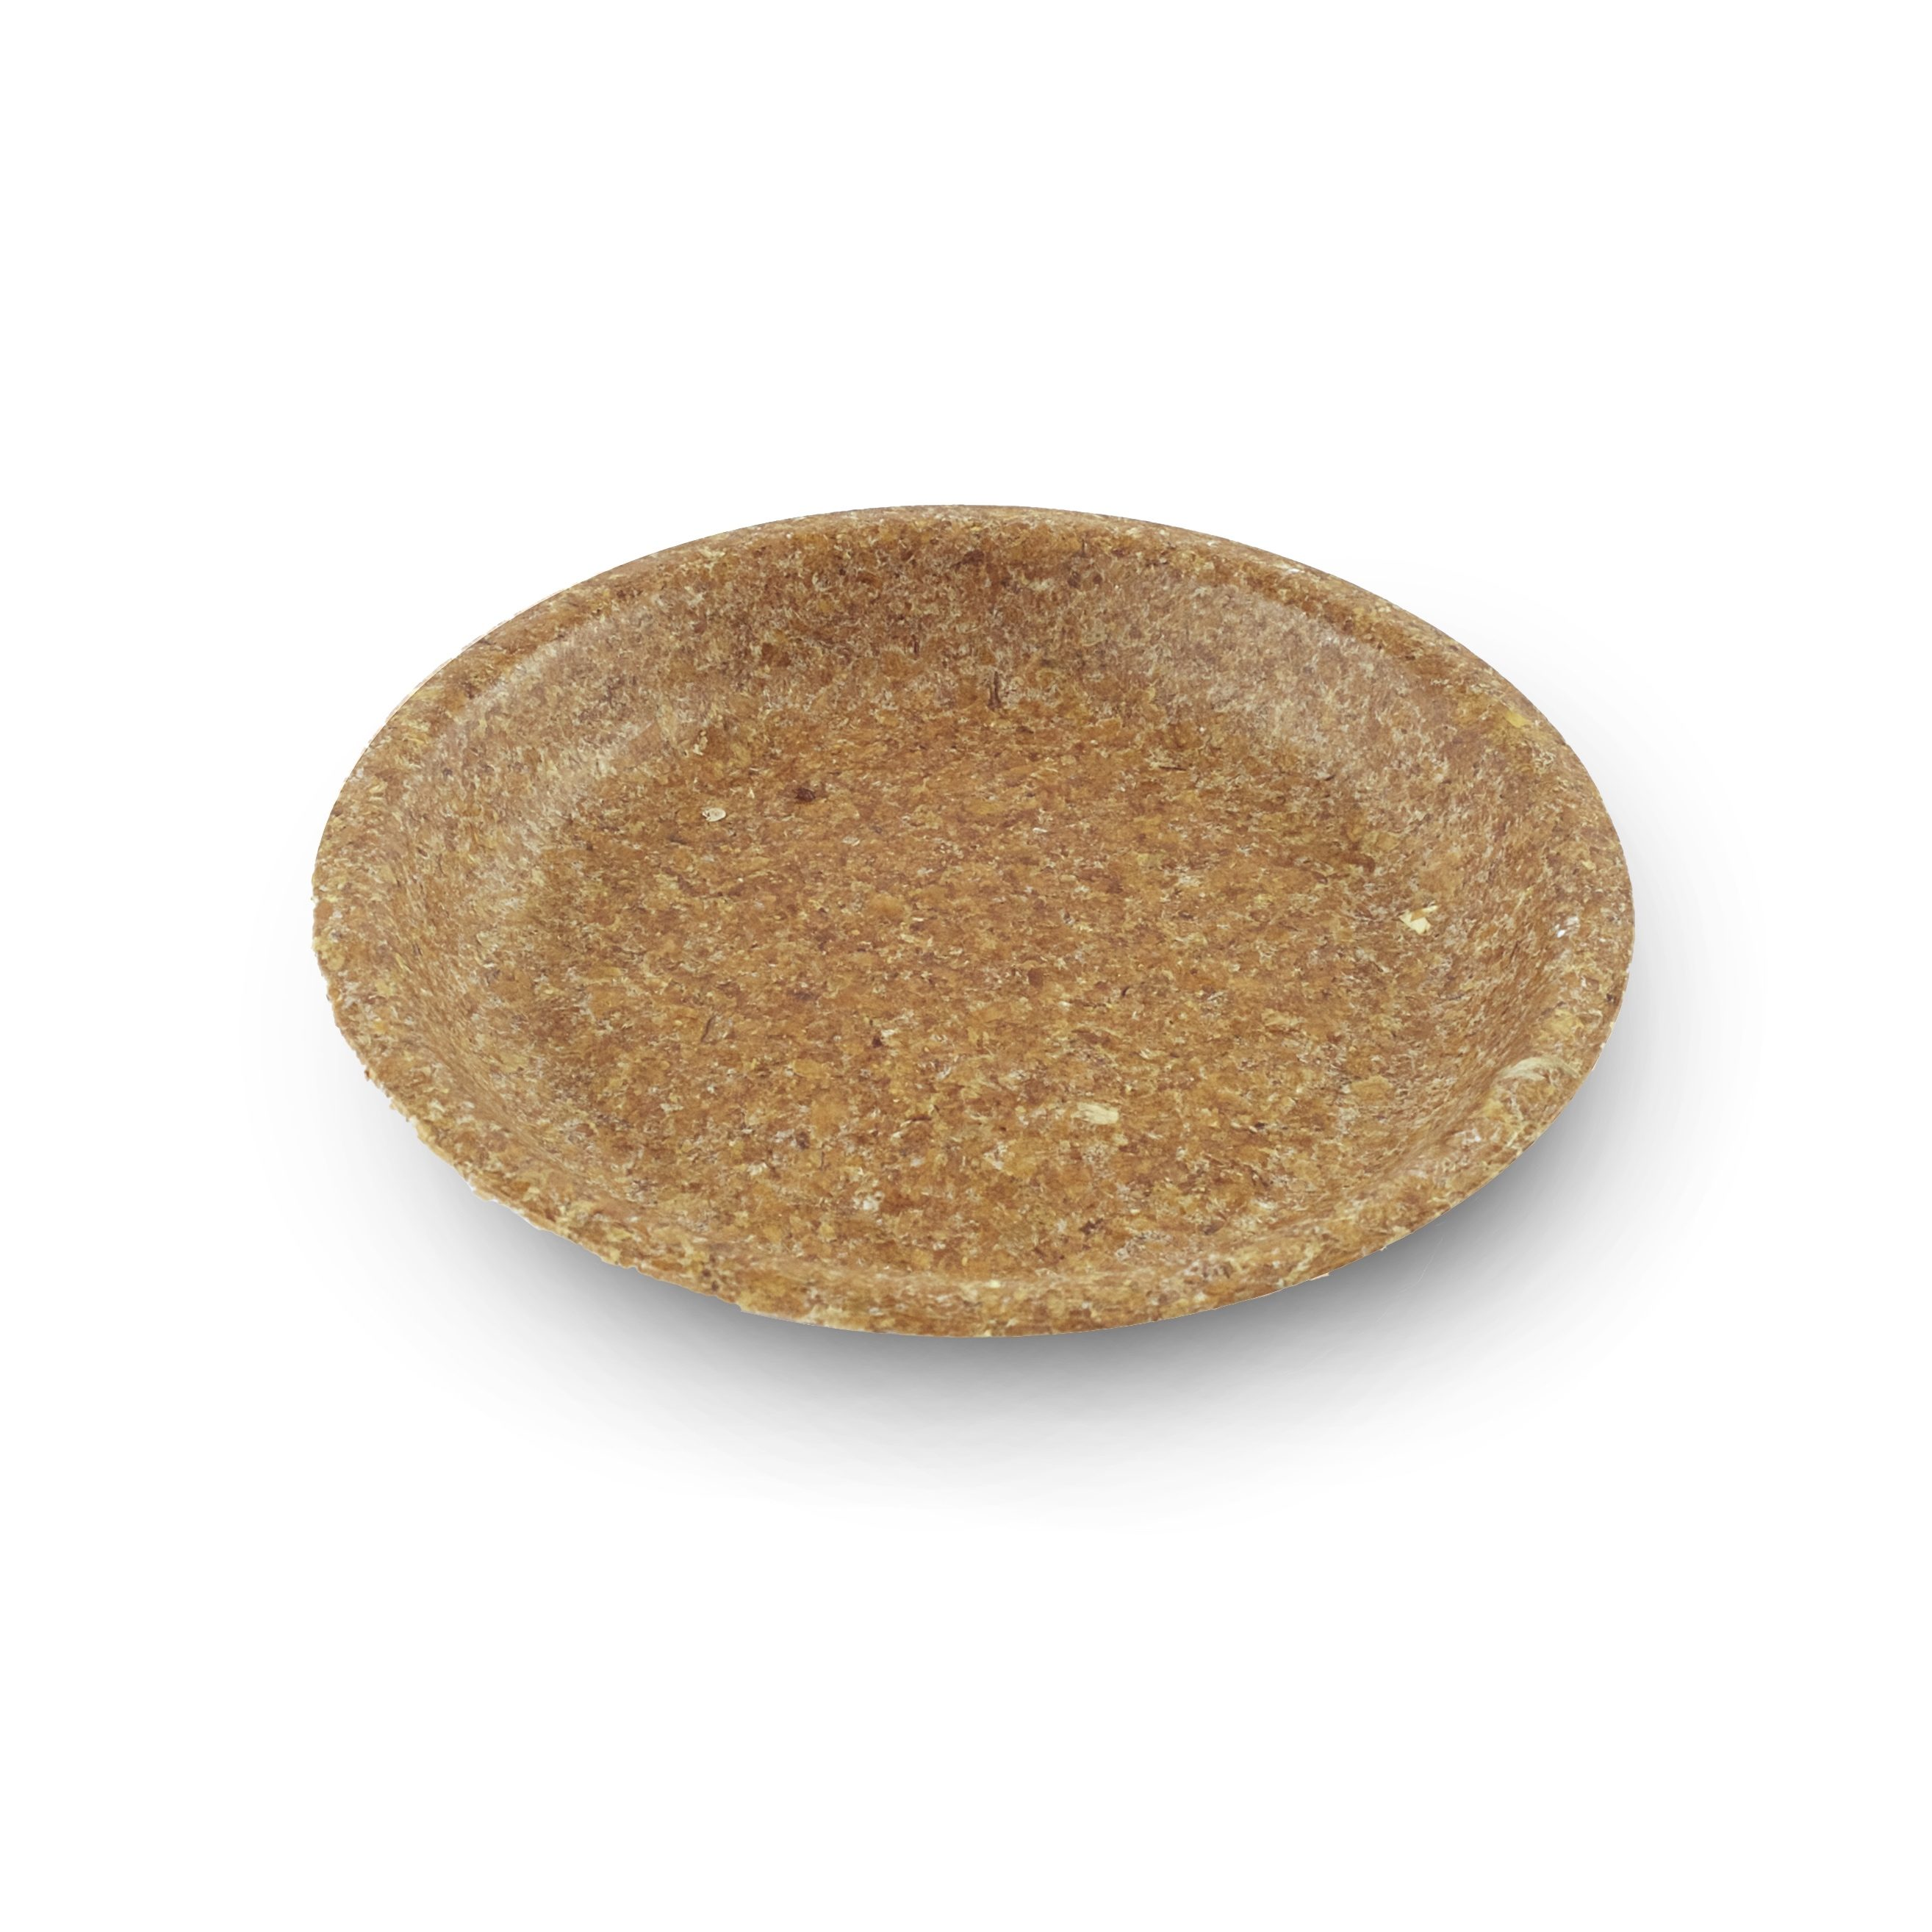 Wheat bran-made Plates the Best Choice to Replace Plastic in Restaurants   The Costa Rica News  sc 1 st  The Costa Rica News. & Wheat bran-made Plates the Best Choice to Replace Plastic in ...